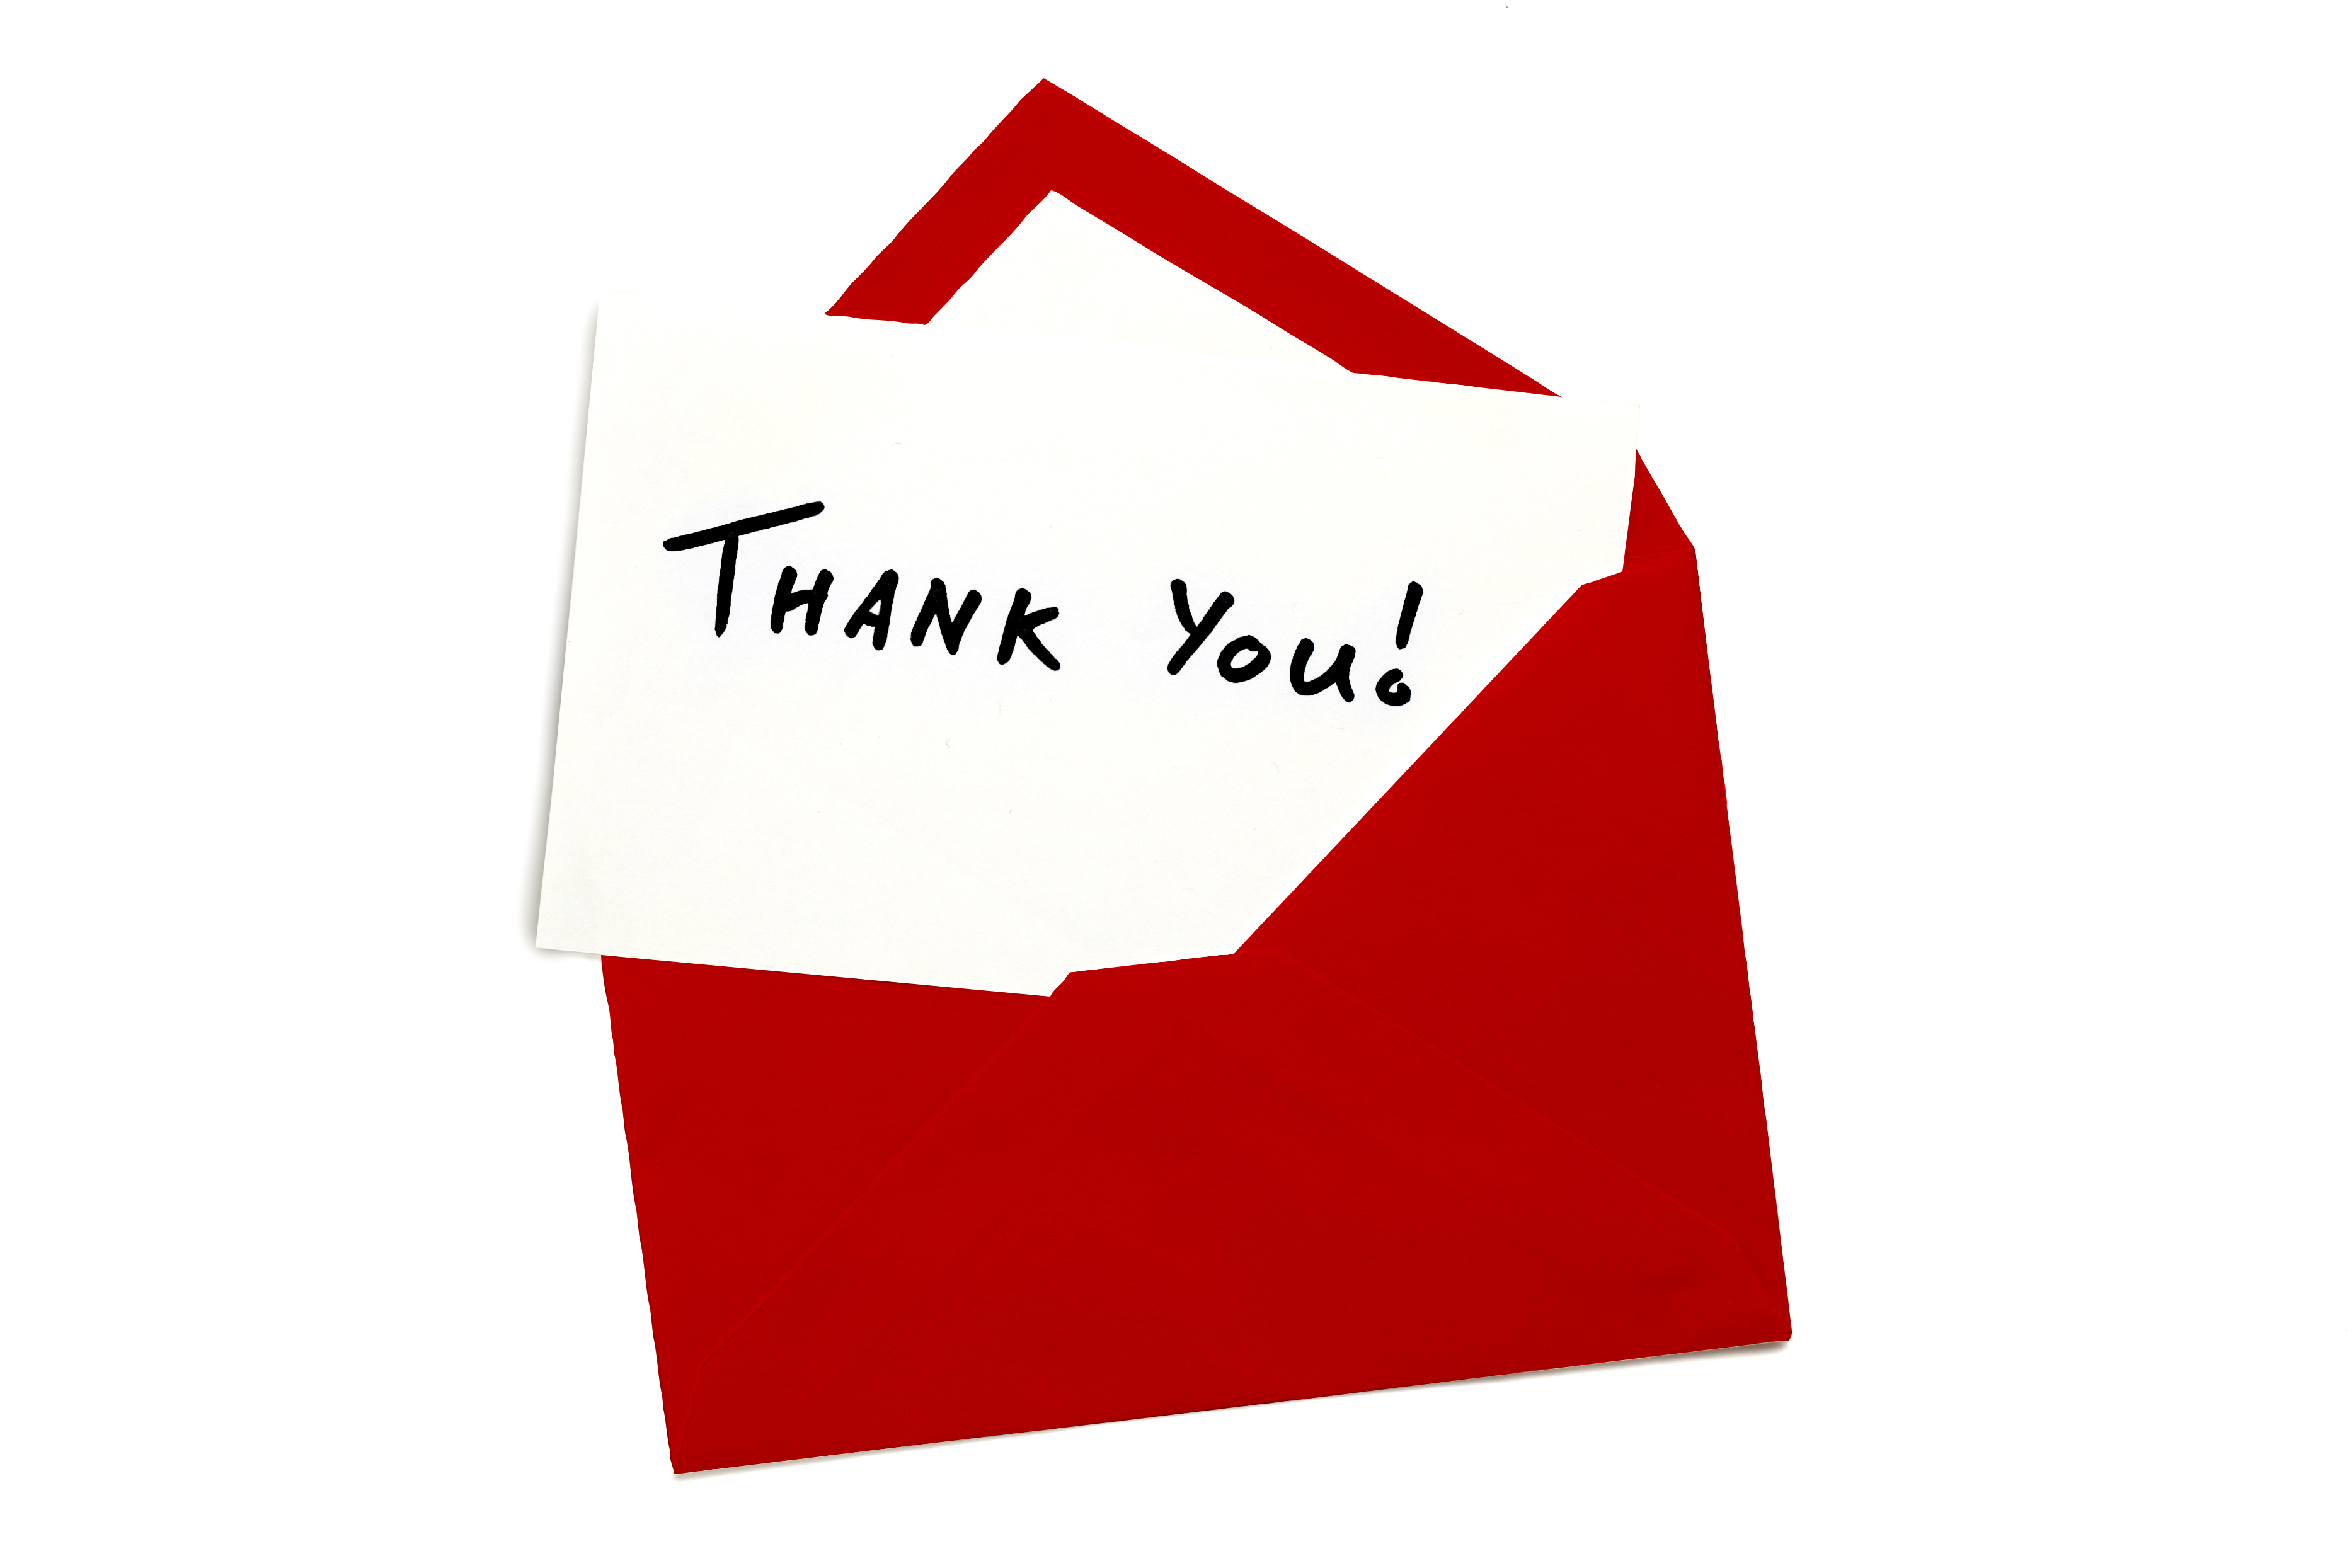 real estate agent sending a thank you card to a previous client